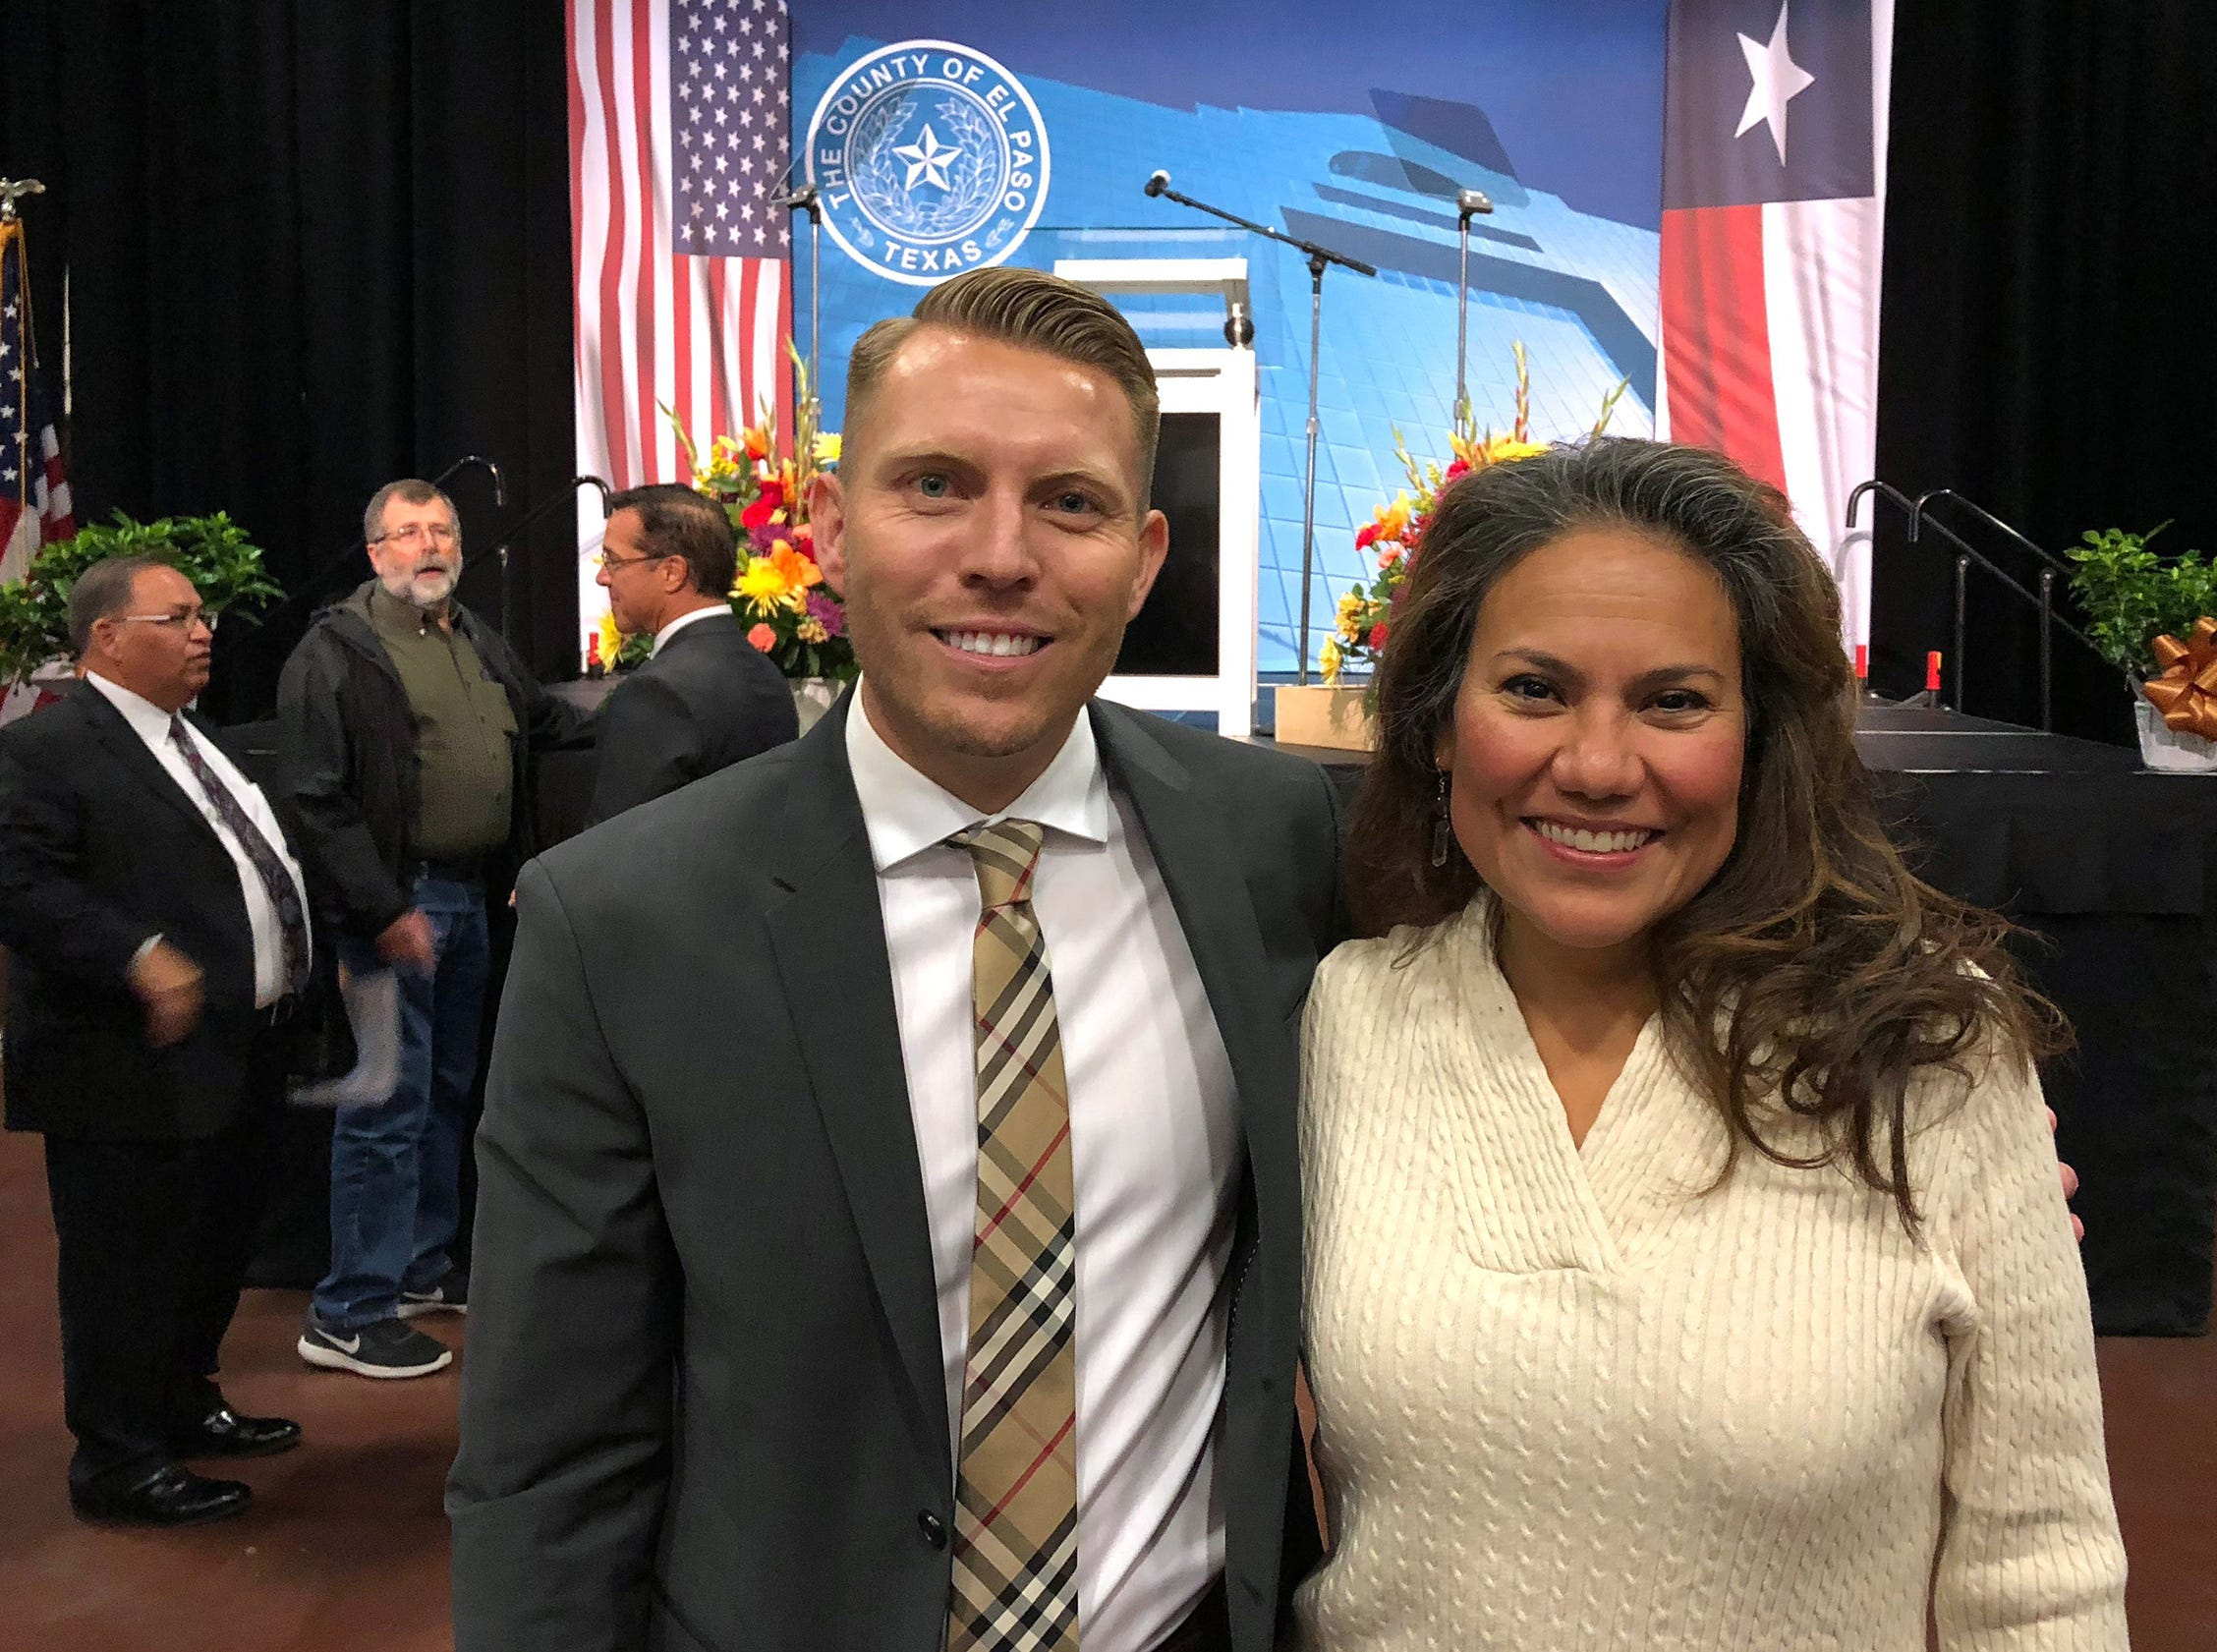 Former County Judge Veronica Escobar stands with current County Judge Ruben John Vogt after he gave his one and only State of the County address Wednesday afternoon at the El Paso Convention Center. The event, attended by dozens of public officials and business leaders, was sponsored by the El Paso Chamber.